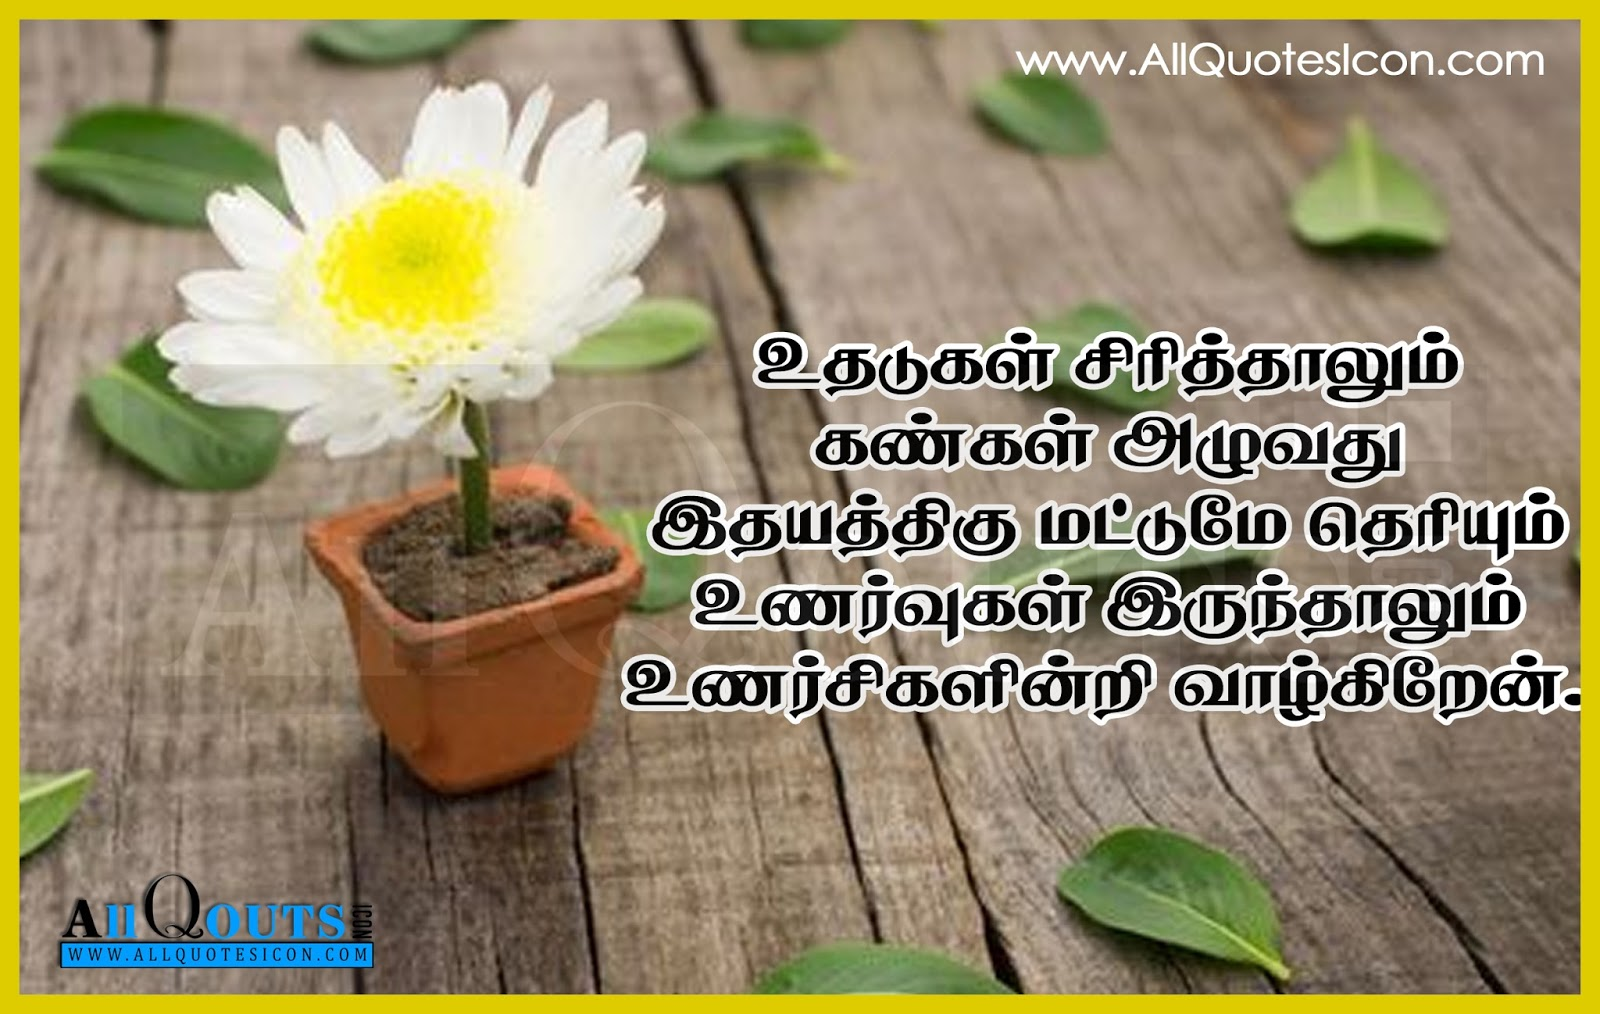 Best Tamil Quotes And Images Wwwallquotesiconcom Telugu Quotes